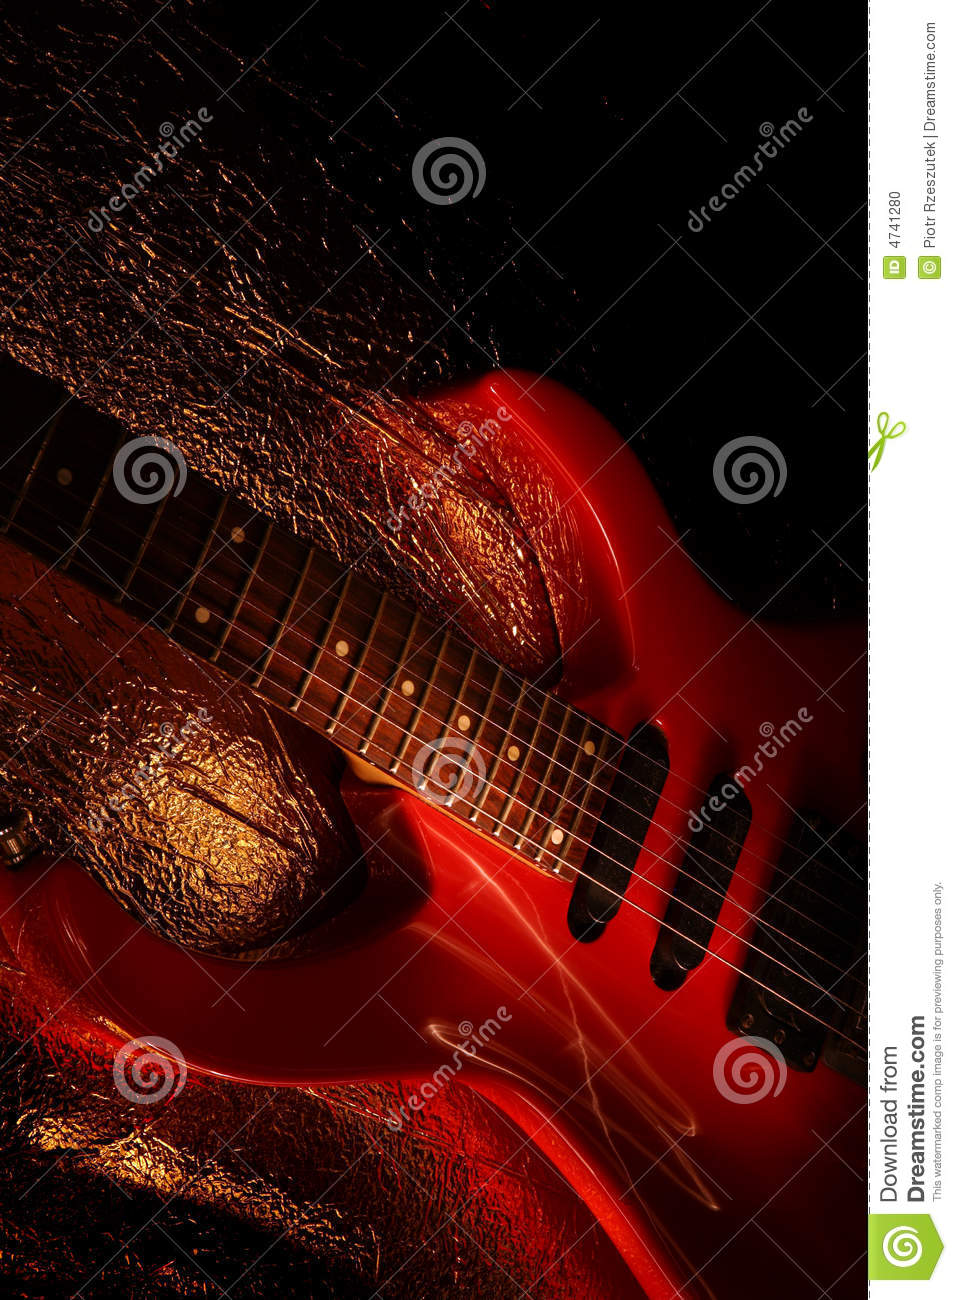 music time guitar abstract - photo #9